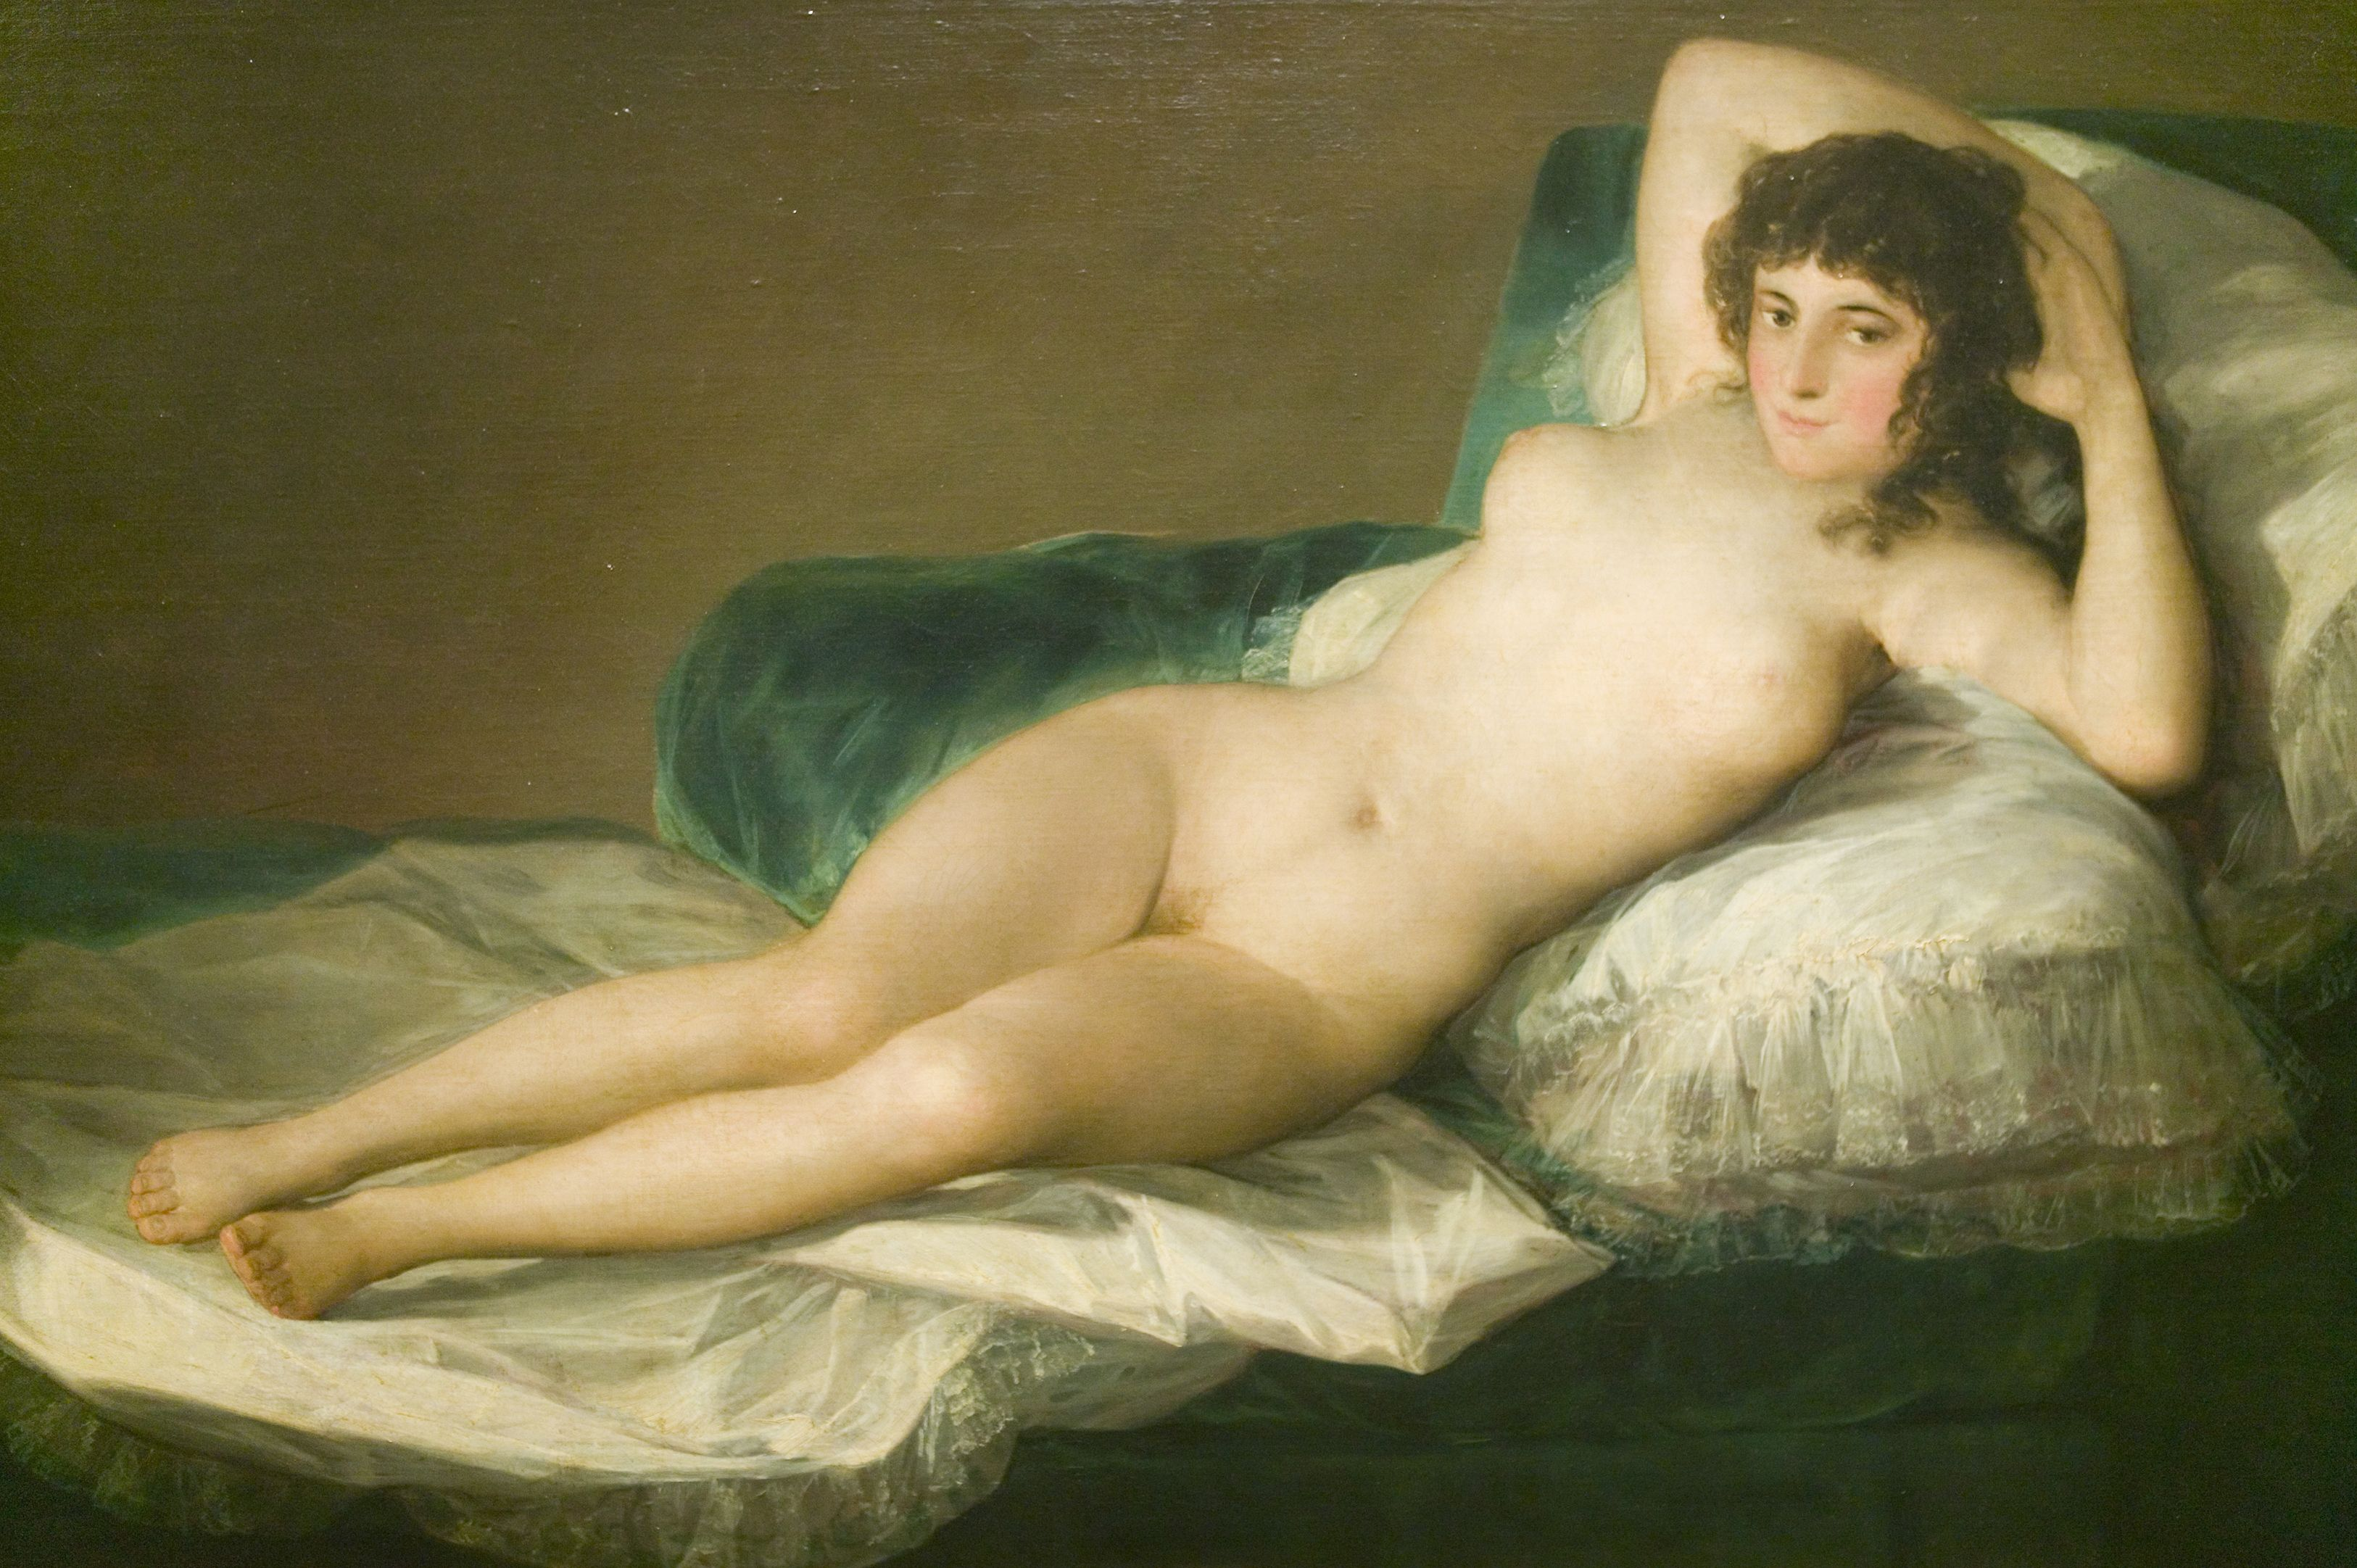 Important Pieces of Nude Artwork - Most Famous Nude Art Pieces of All Time